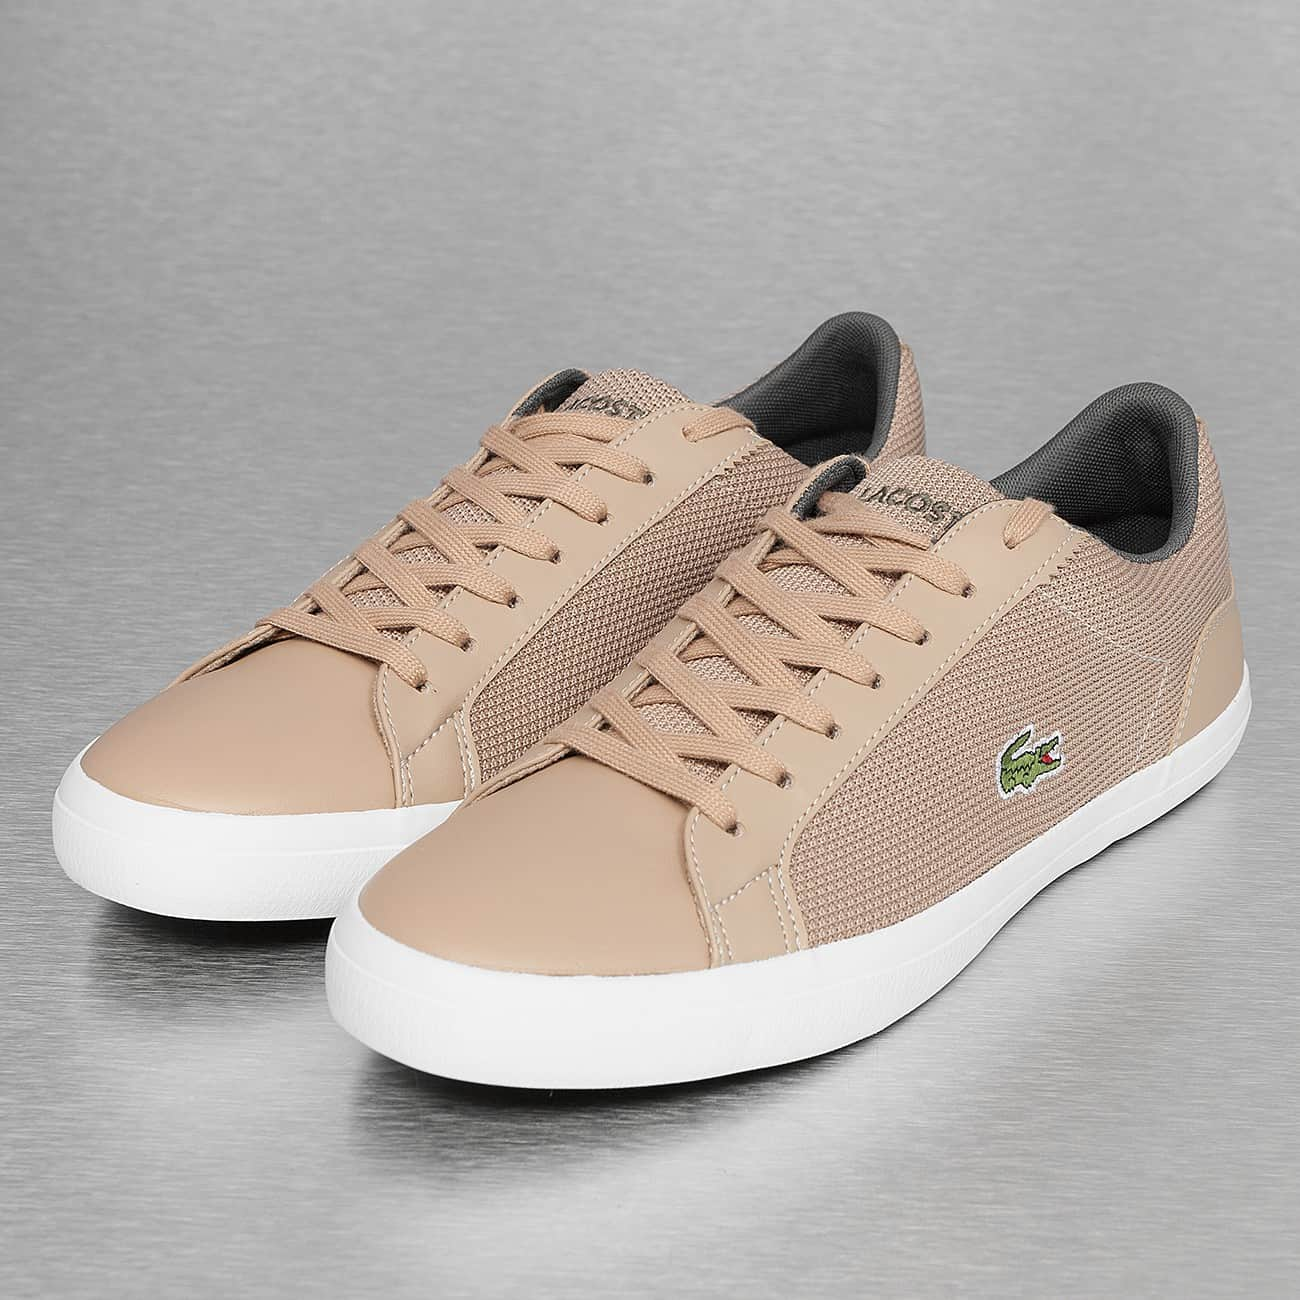 2a2695788c chaussure lacoste homme beige